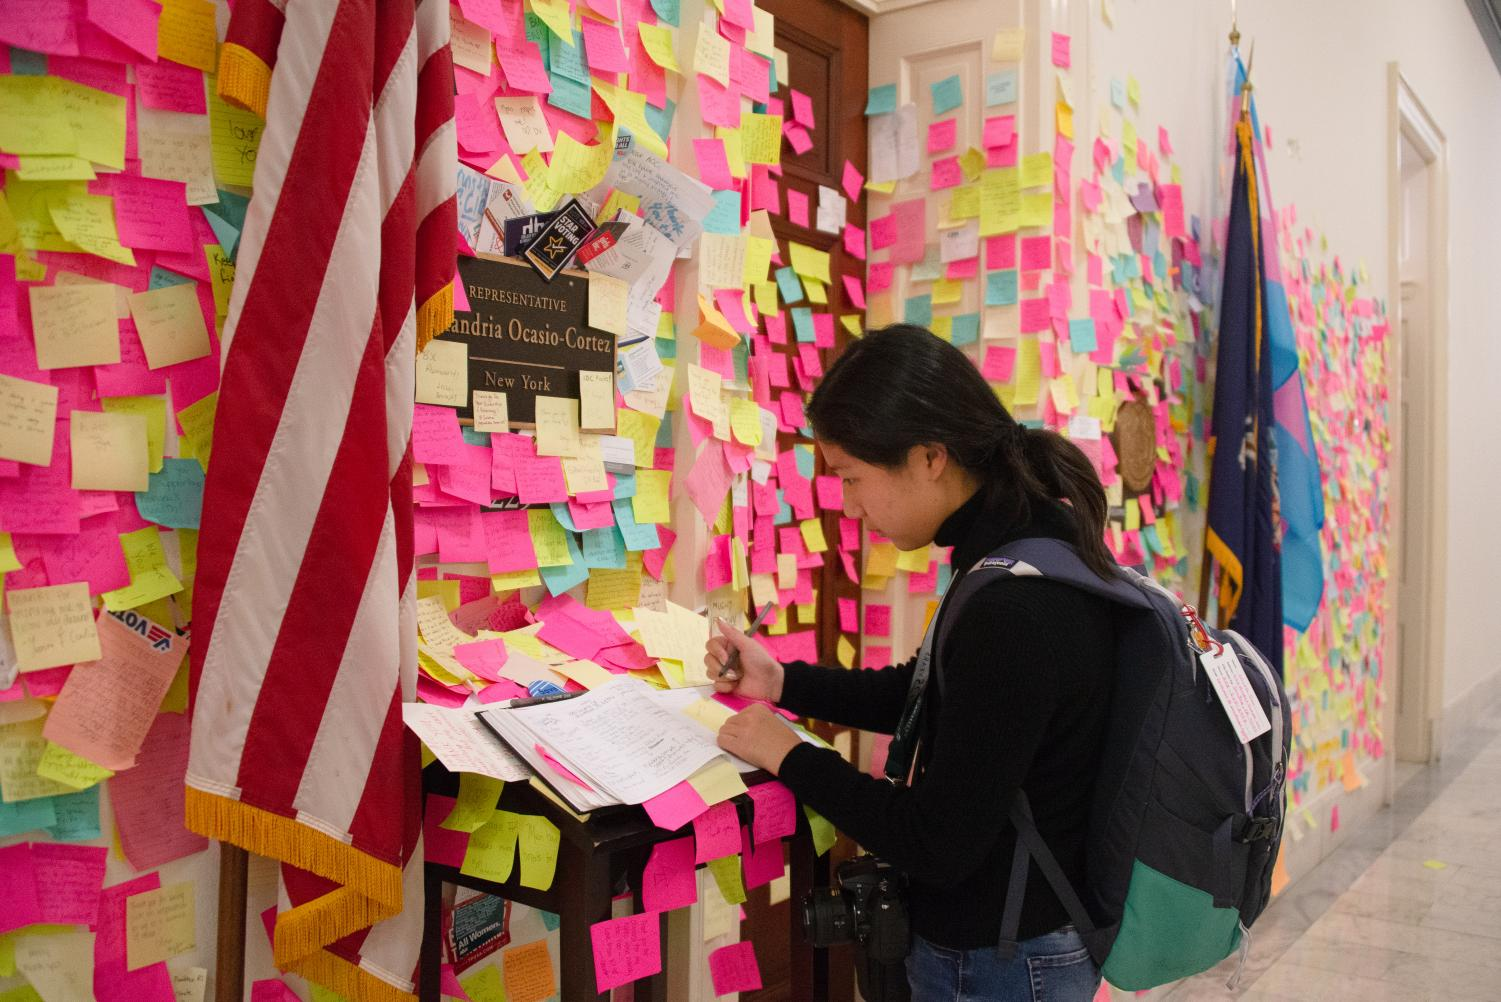 Nicole Tian (10) writes a message on a Post-It note to add to the mural of Post-Its around Rep. Alexandria Ocasio-Cortez's (D-NY) Cannon office door.